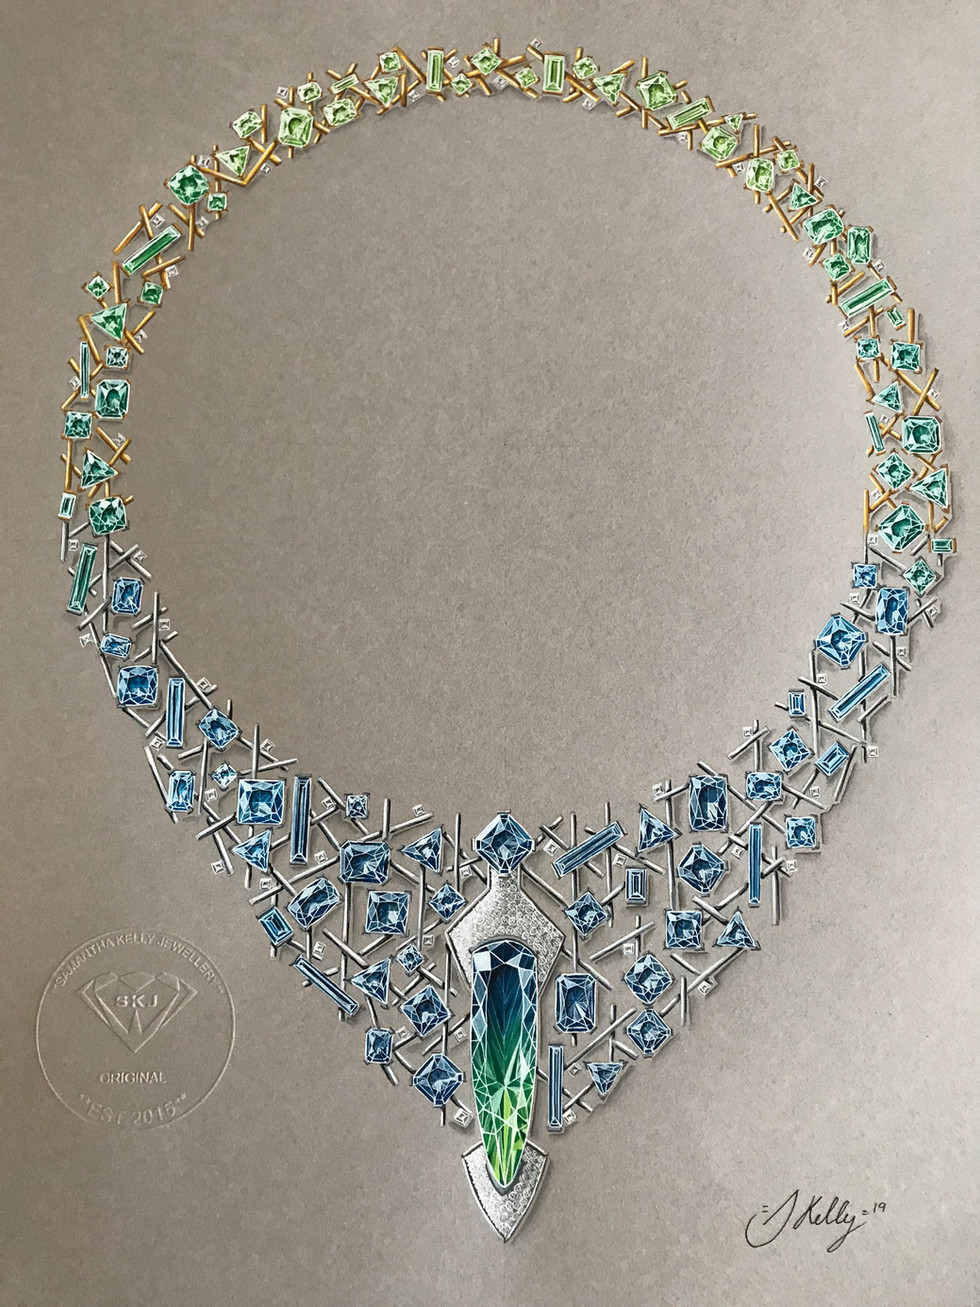 Bi-coloured Tourmaline, Sapphires, Emeralds, Tourmalines, Peridots and Diamond Necklace.